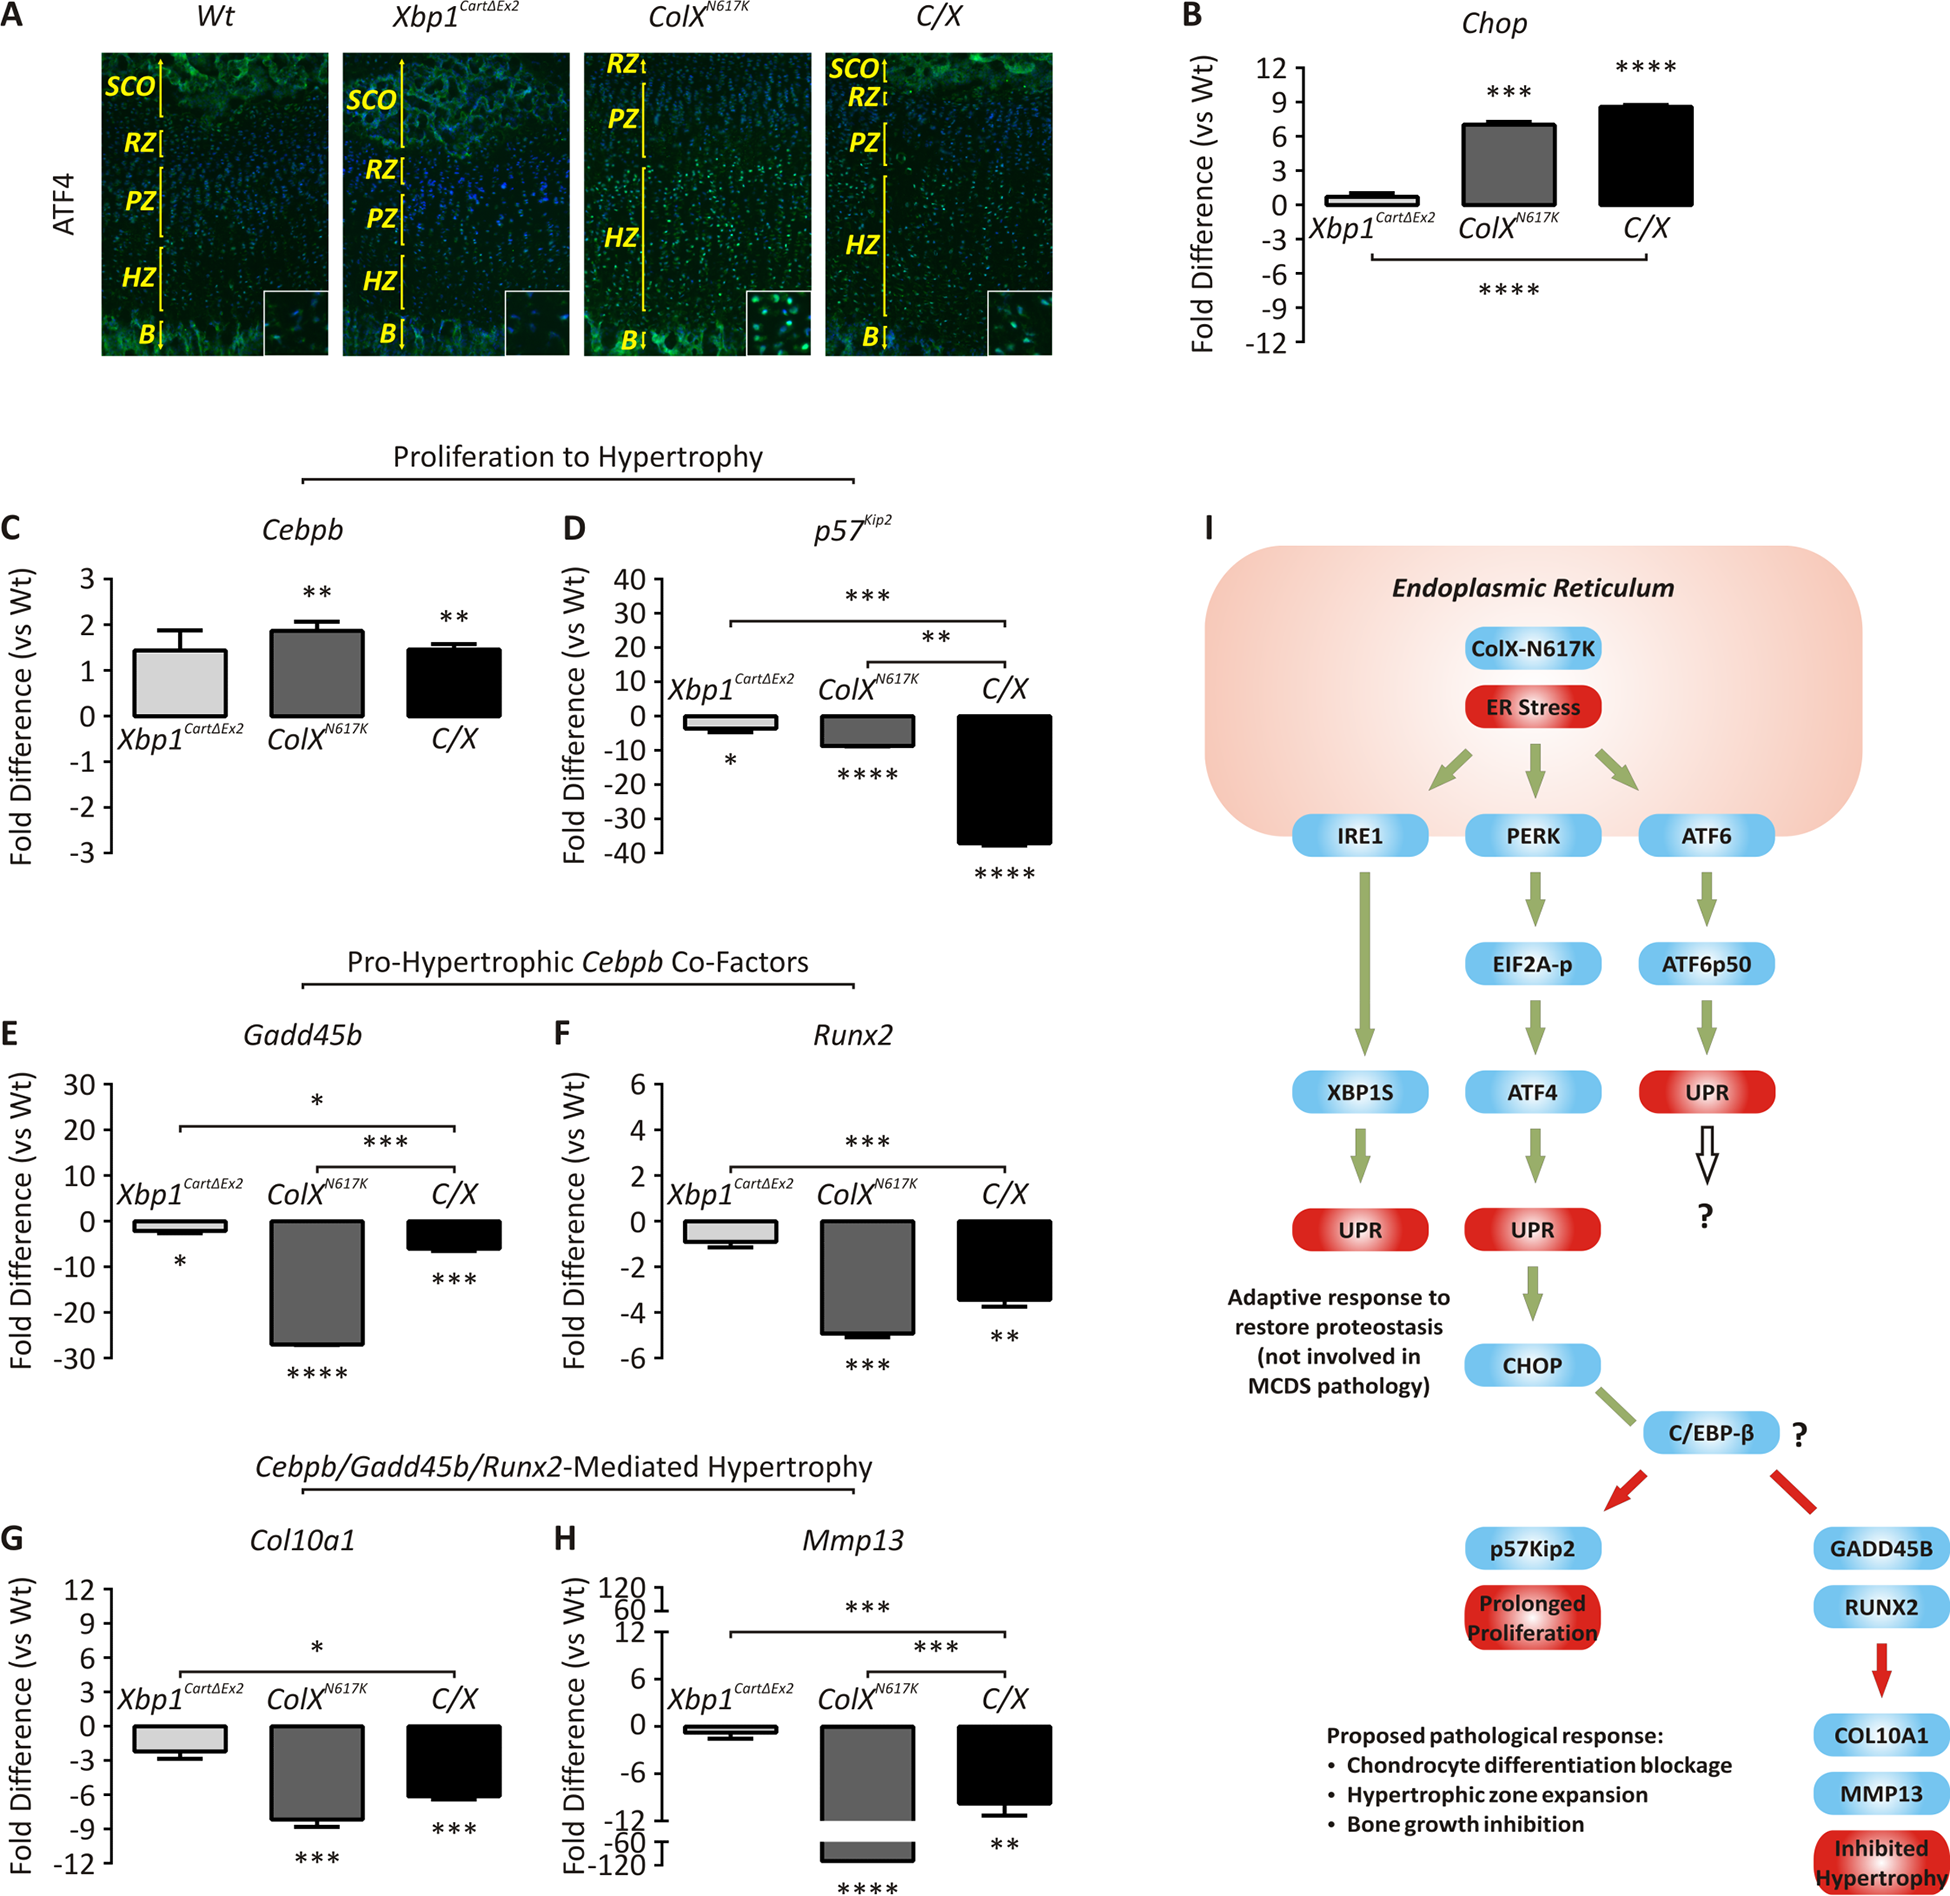 Dysregulated expression of genes involved in ER stress and chondrocyte differentiation.